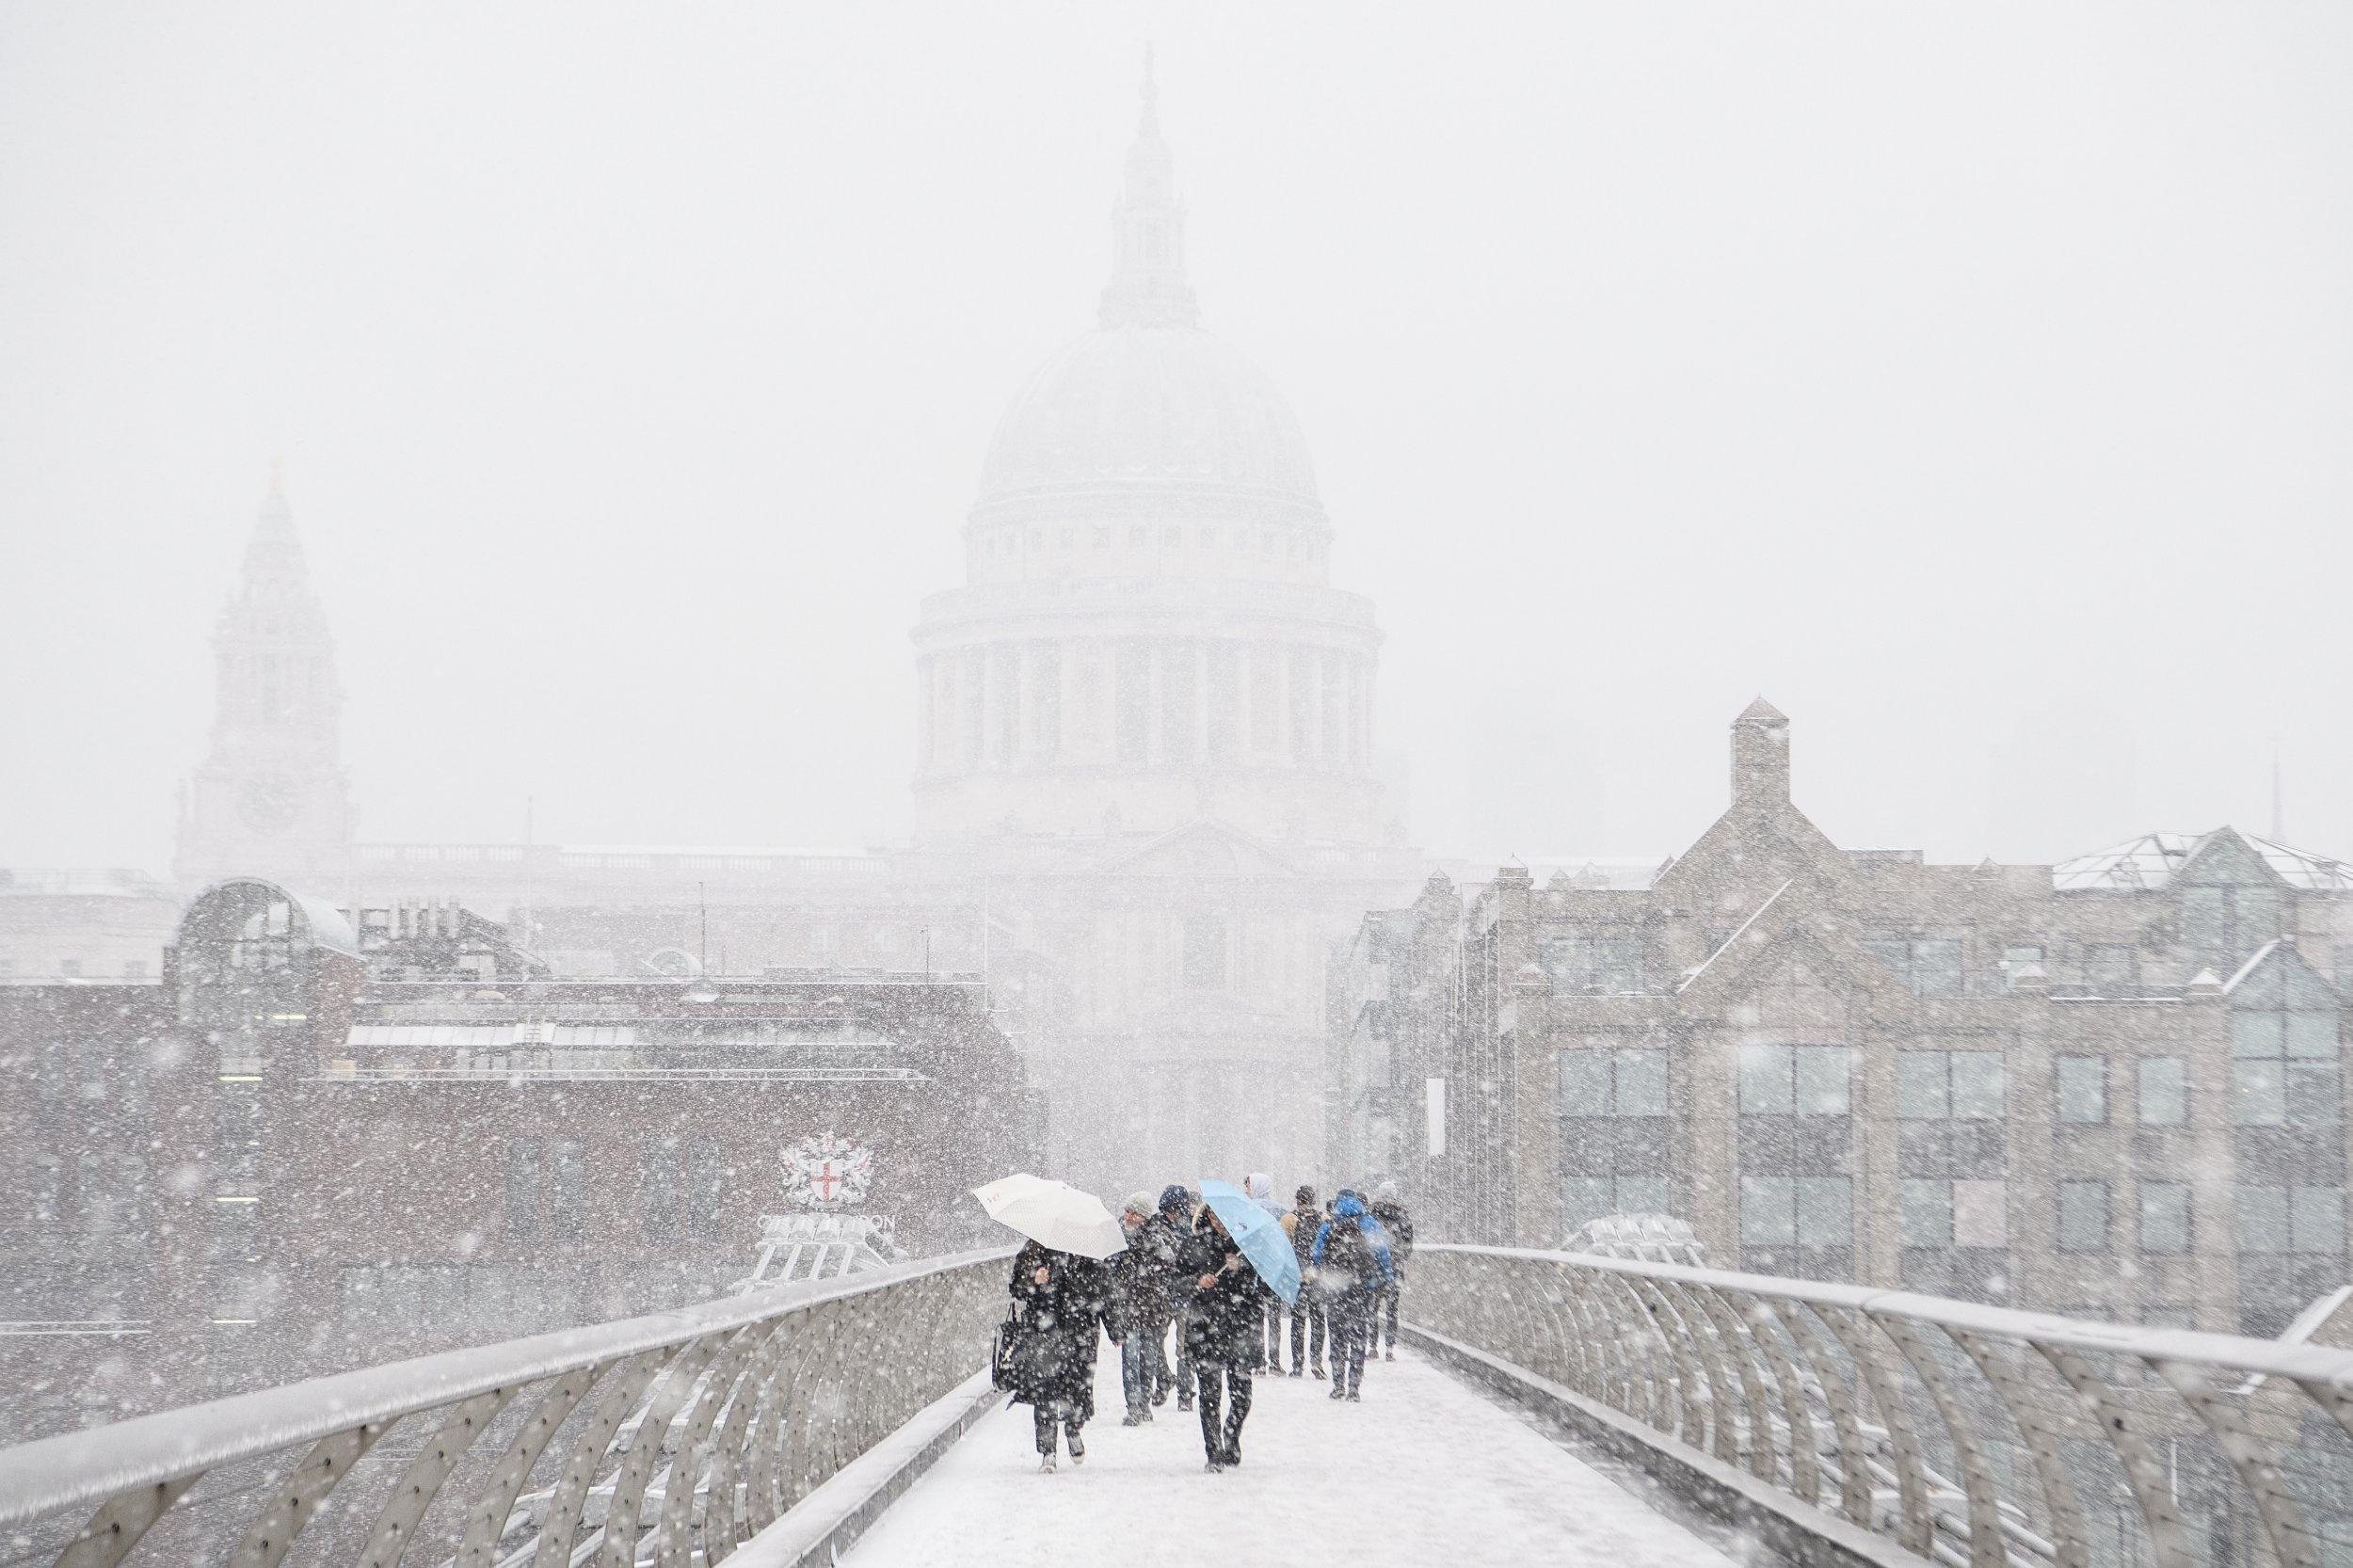 LONDON, UNITED KINGDOM - MARCH 02: Saint Paul's Cathedral is just visible through a blizzard as people cross the River Thames on March 2, 2018 in London, United Kingdom. Weather fronts dubbed Storm Emma and The Beast From The East have combined to create freezing conditions that have bought much of the UK to a standstill. Businesses have closed, some towns are inaccessible and flights have been cancelled costing the British economy millions of pounds. (Photo by Leon Neal/Getty Images)